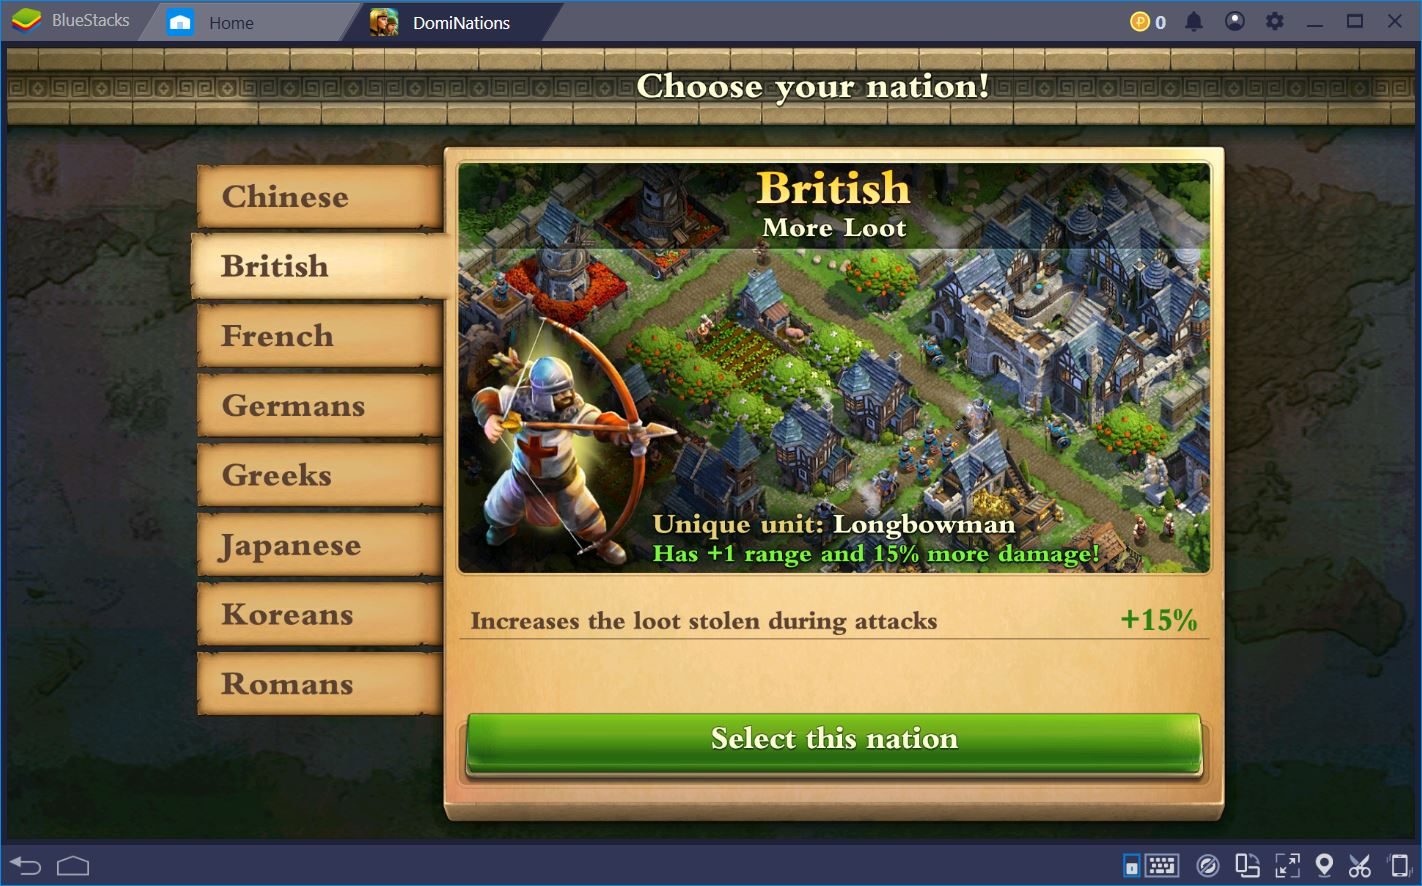 DomiNations: The Best World Nations